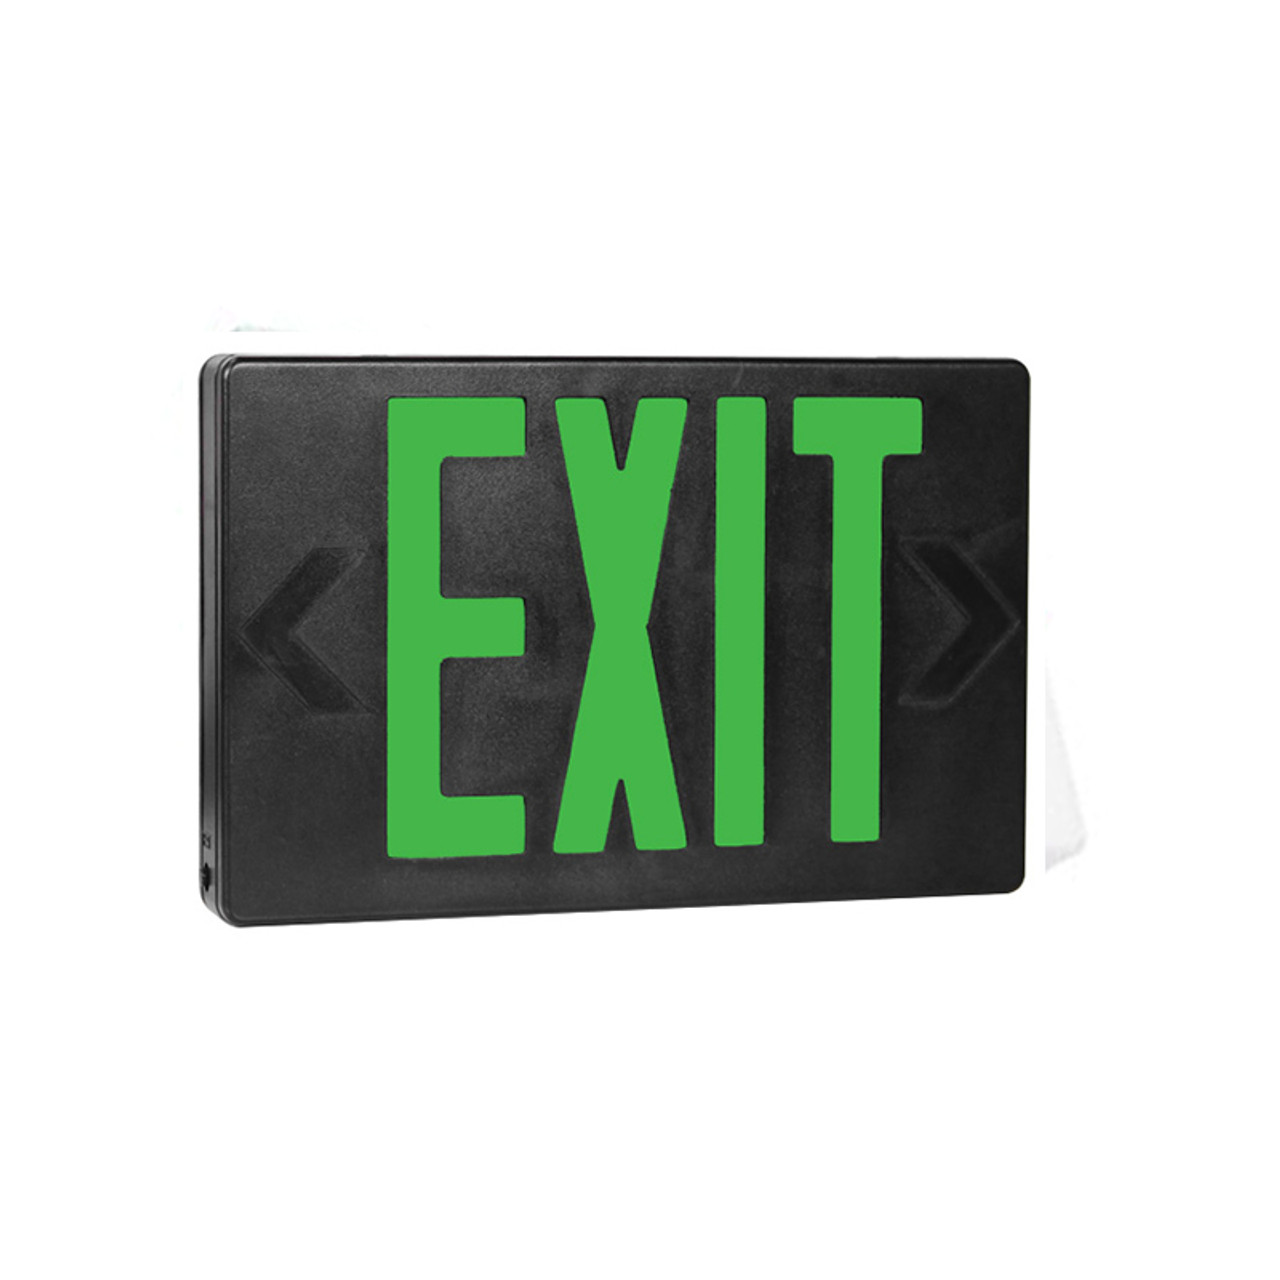 Green Lettering Black Housing LED Exit Sign with Battery Back-Up